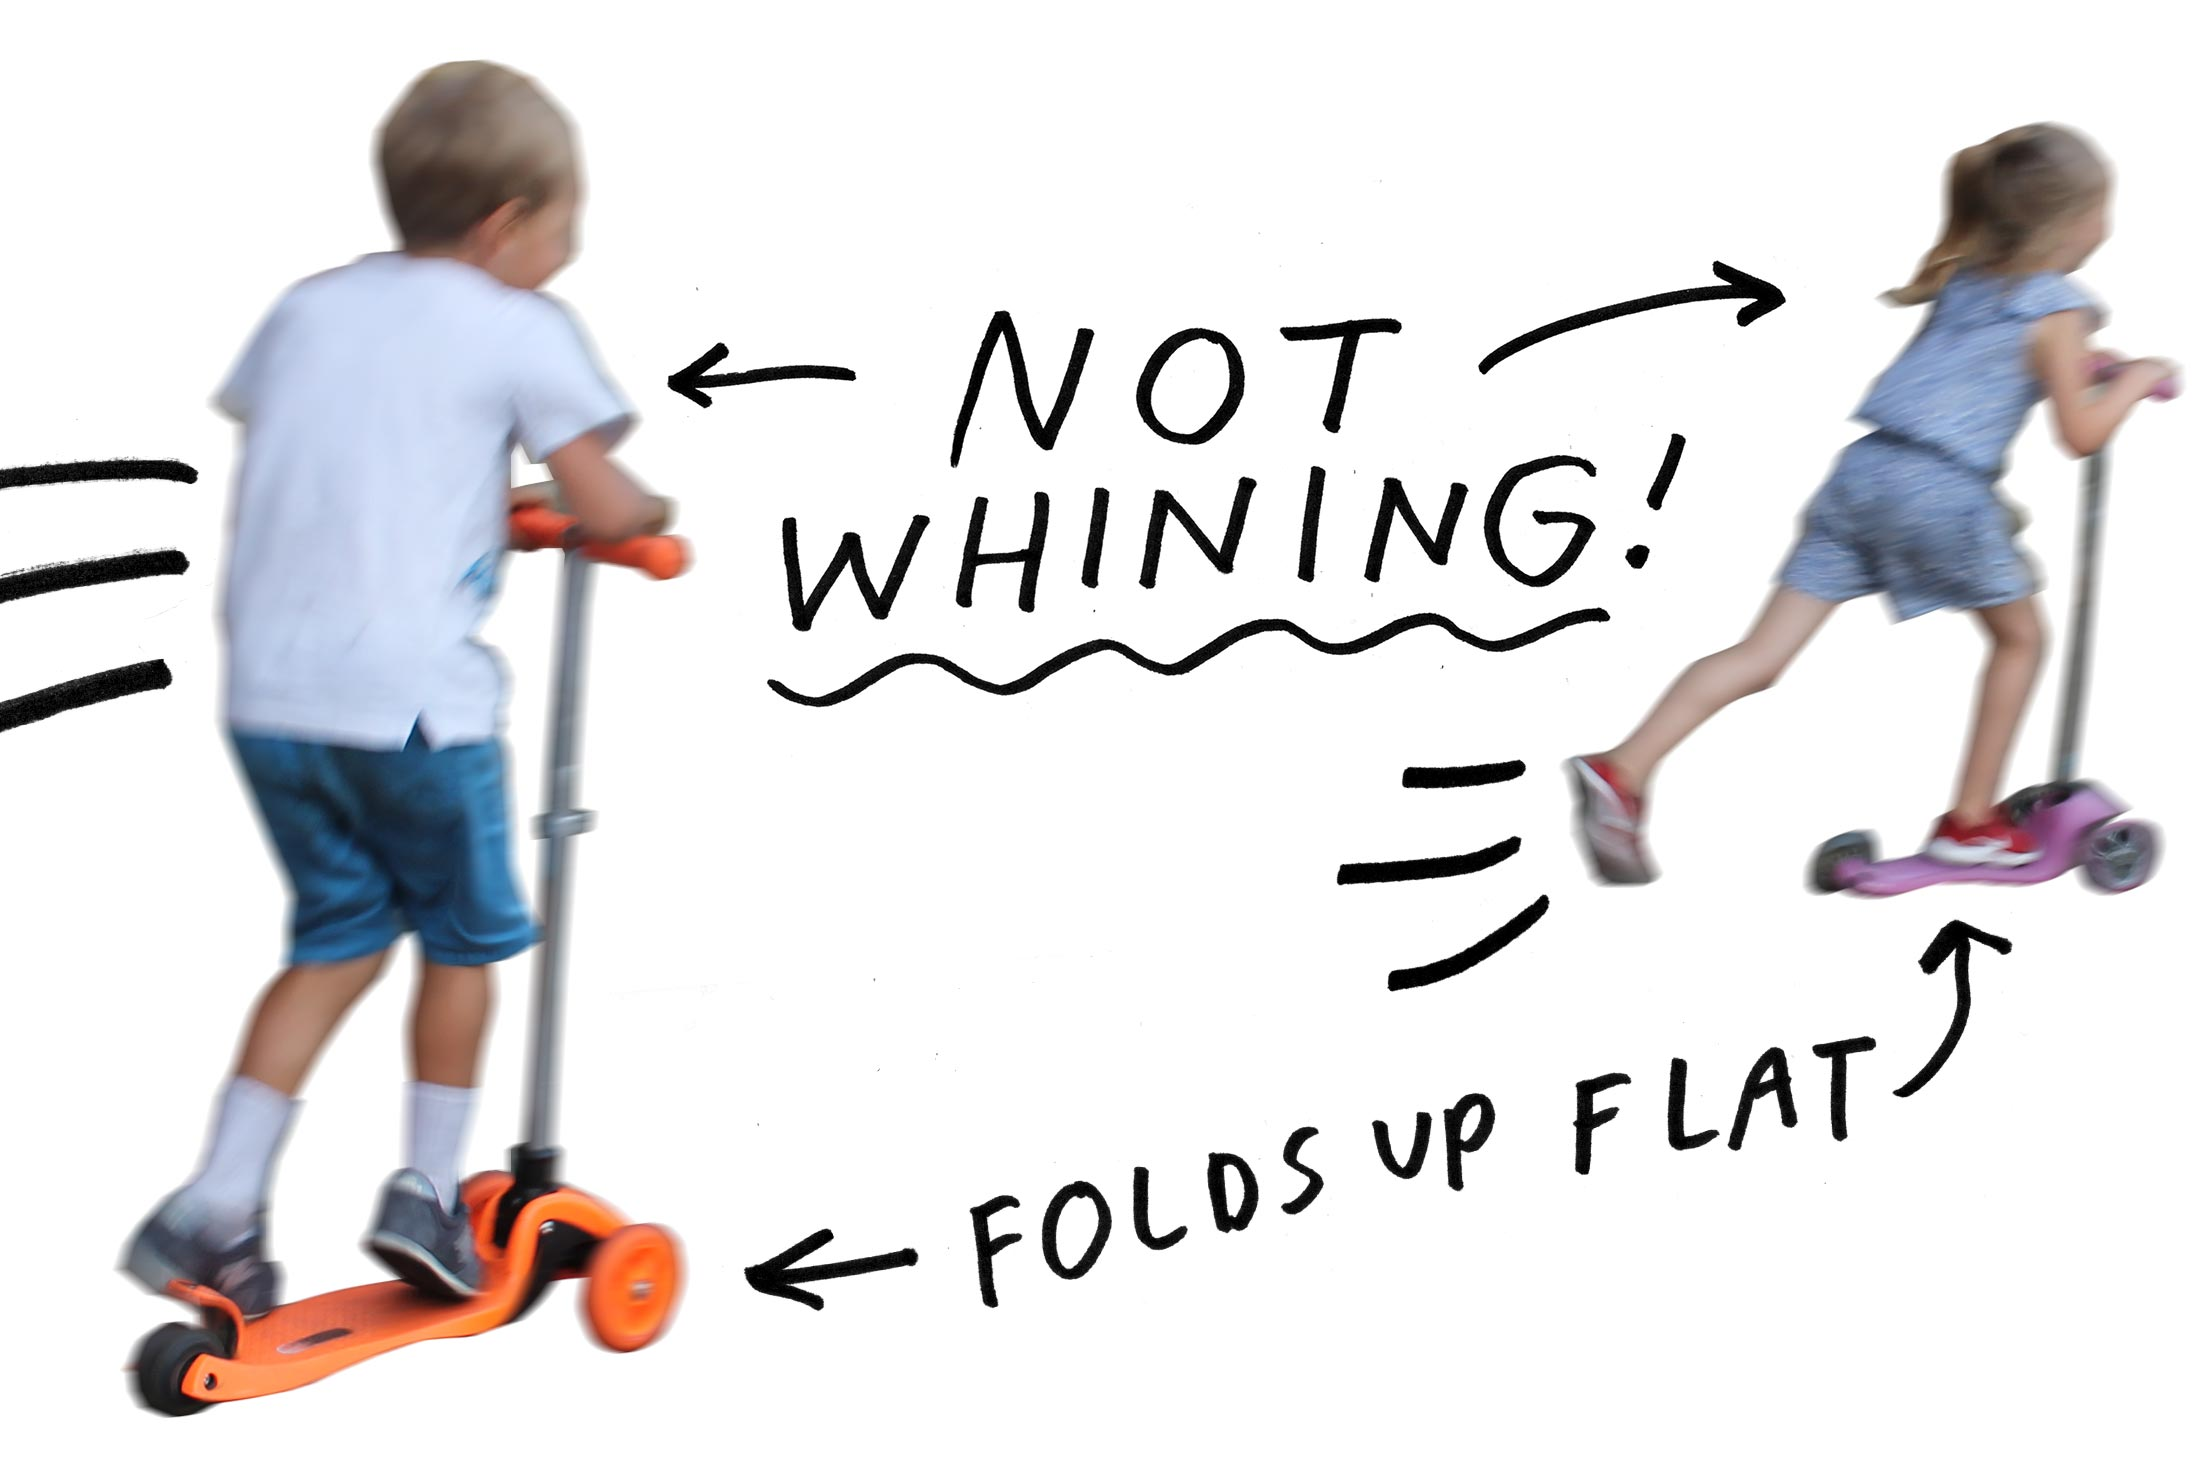 Kids moving quickly without any trace of whining on three wheeled scooters.